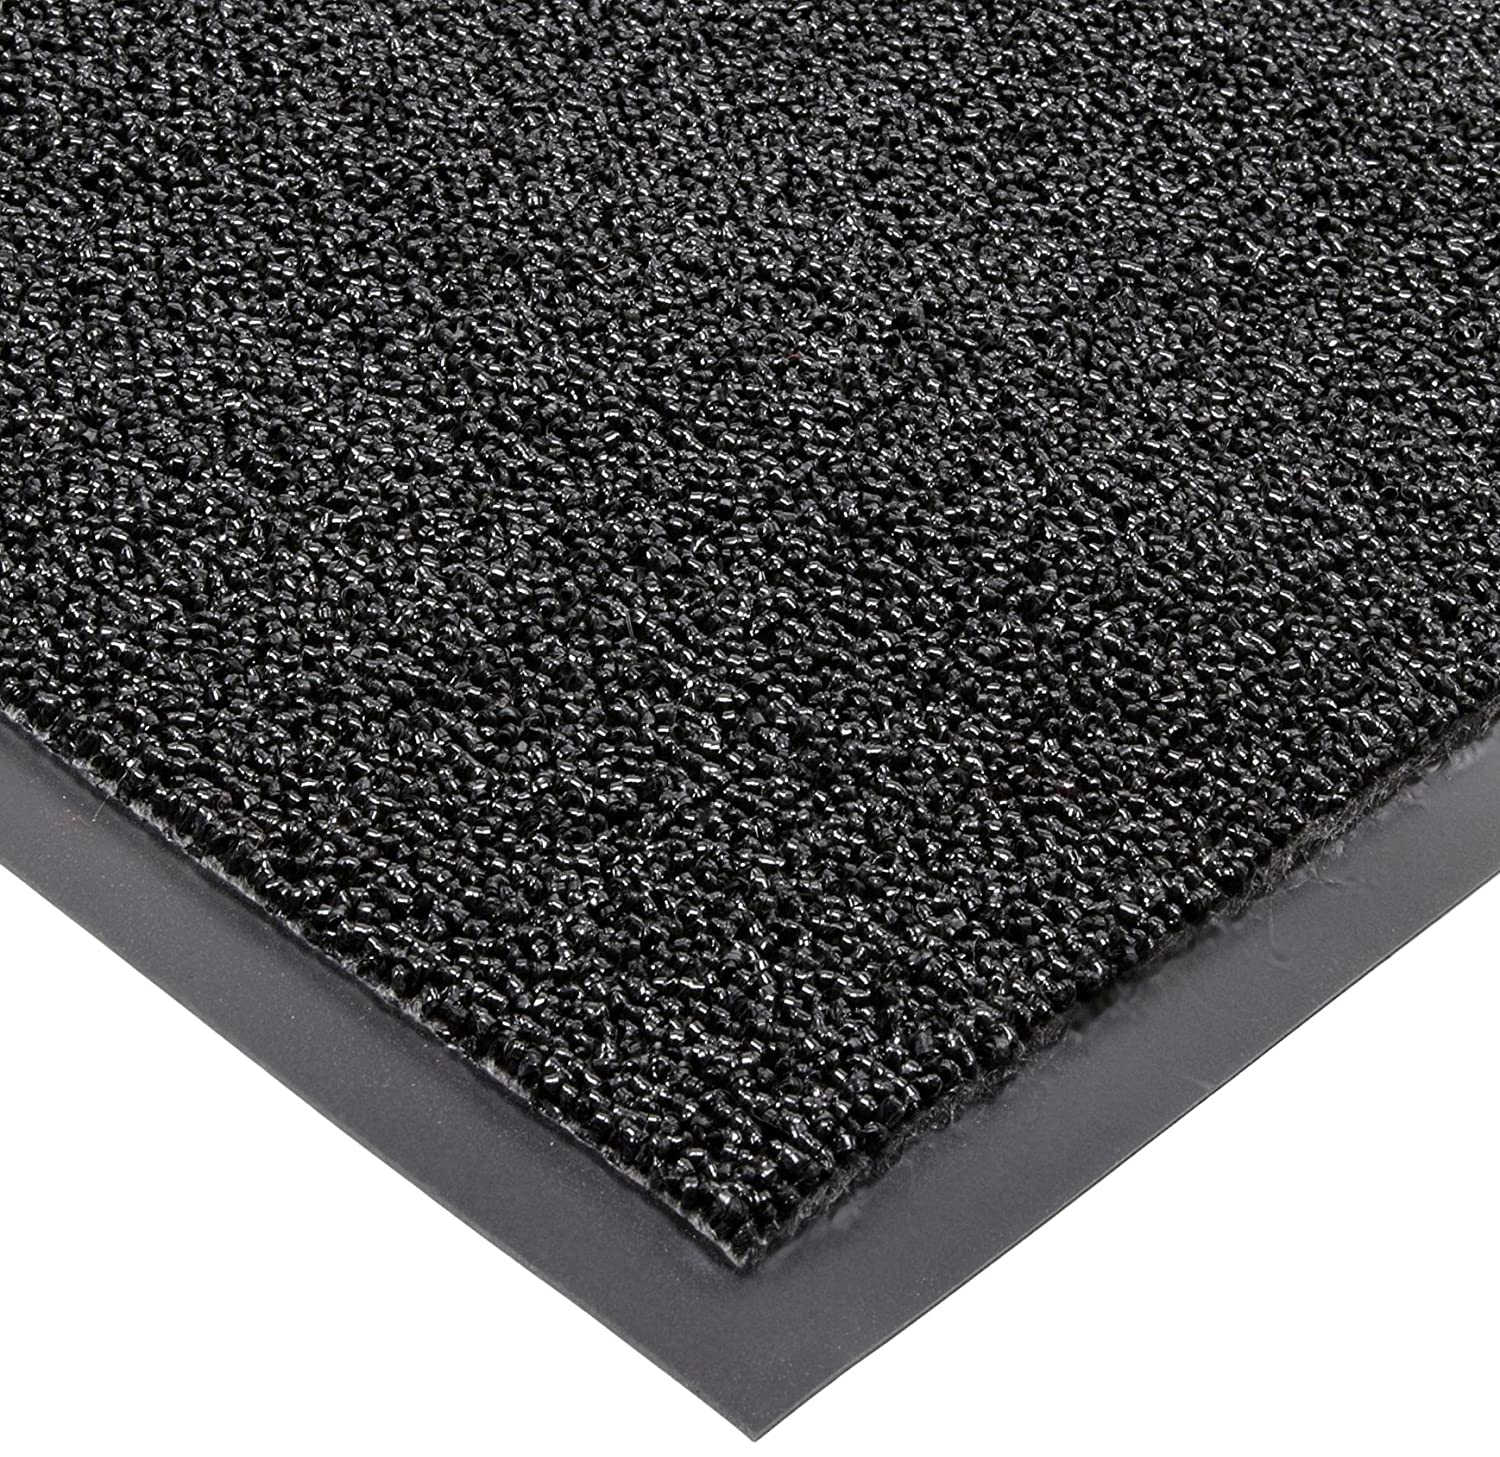 Notrax Non Absorbent Fiber 231 Prelude Entrance Mat for Outdoor and Heavy Traffic Areas 3' Width x 5' Length x 1 4 Thickness Black